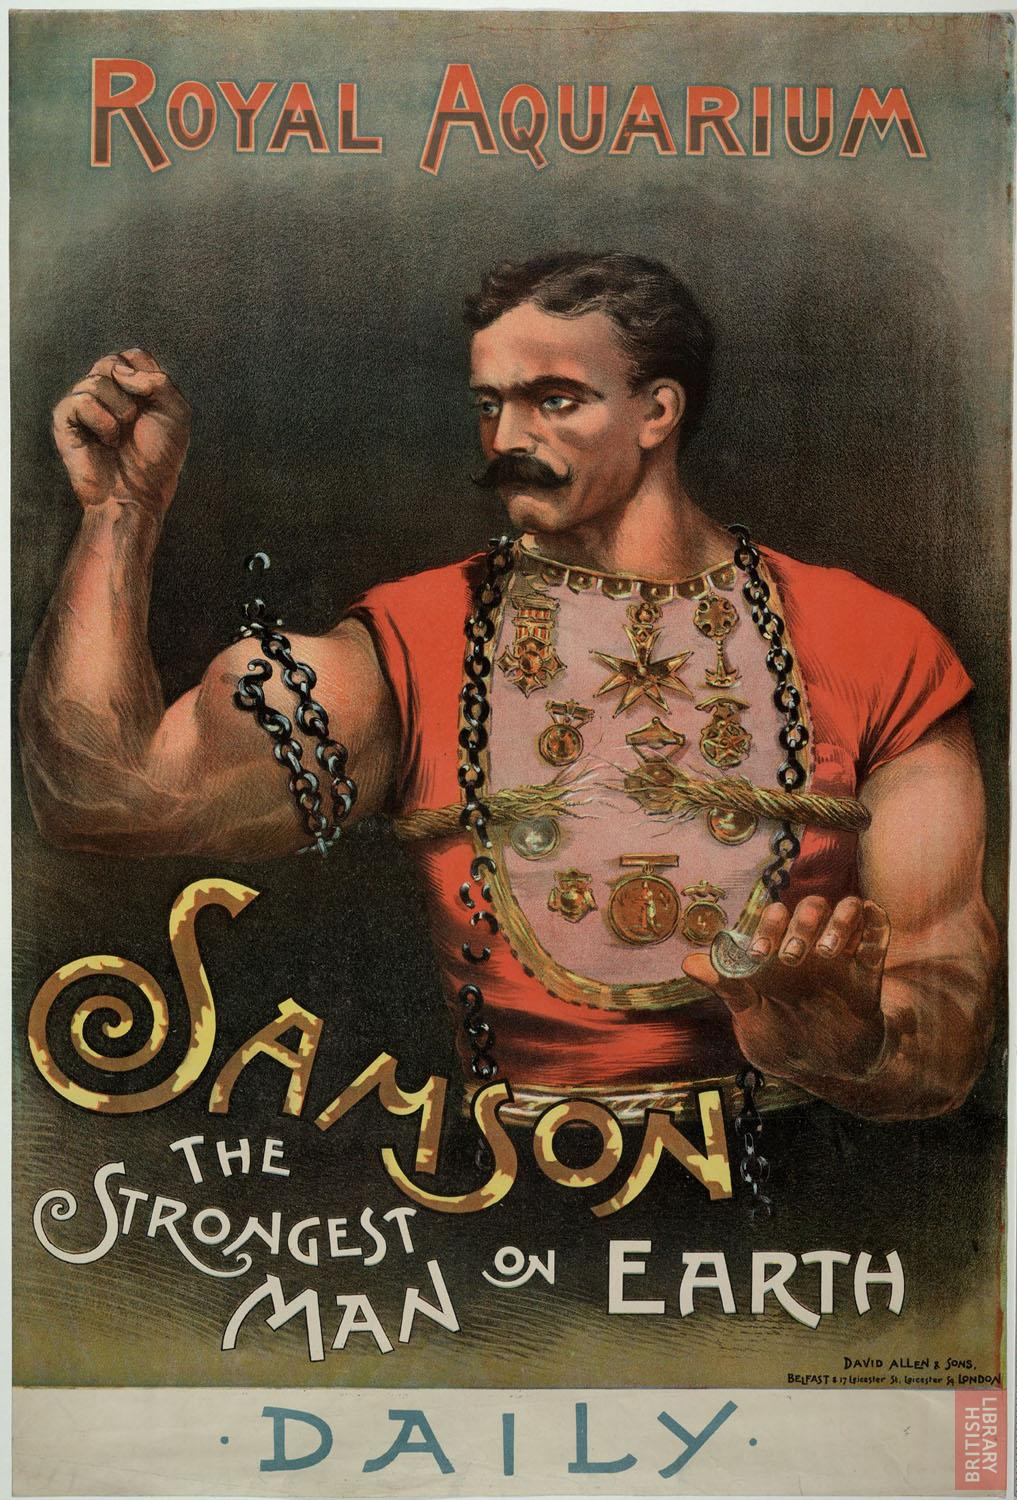 Poster advertising the strongest man on earth, at the Royal Aquarium